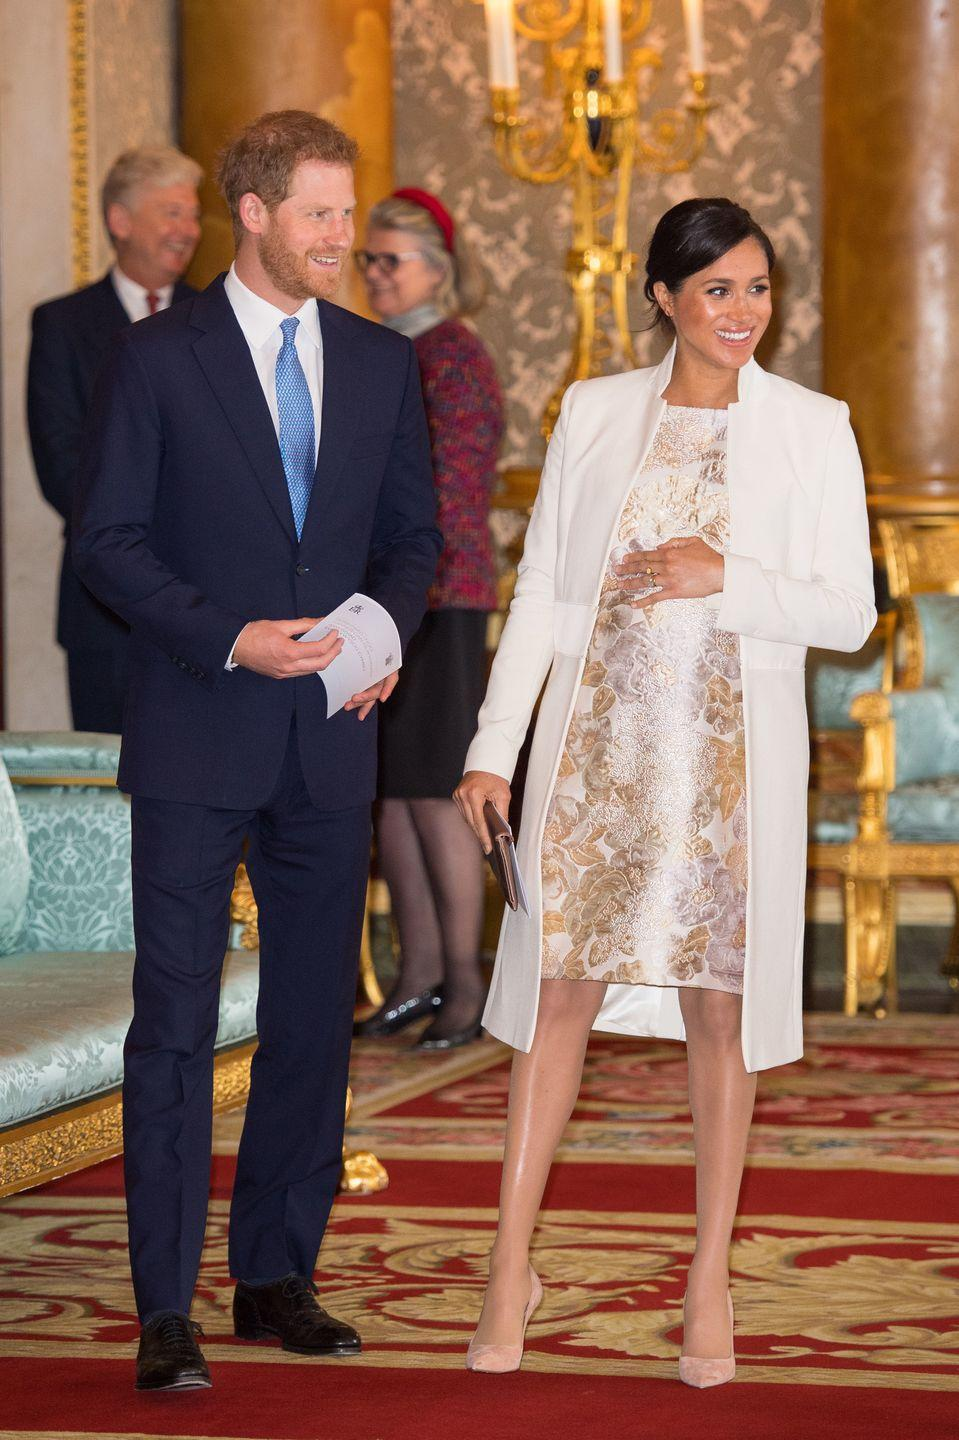 "<p>The Duchess of Sussex paired a metallic brocade dress with a rose gold clutch, nude Paul Andrew heels, and a recycled <a href=""https://www.amandawakeley.com/us/cream-sculpted-tailoring-coat"" rel=""nofollow noopener"" target=""_blank"" data-ylk=""slk:Amanda Wakely cream coat"" class=""link rapid-noclick-resp"">Amanda Wakely cream coat</a>, for Prince Charles's 50th Anniversary Investiture reception at Buckingham Palace. </p>"